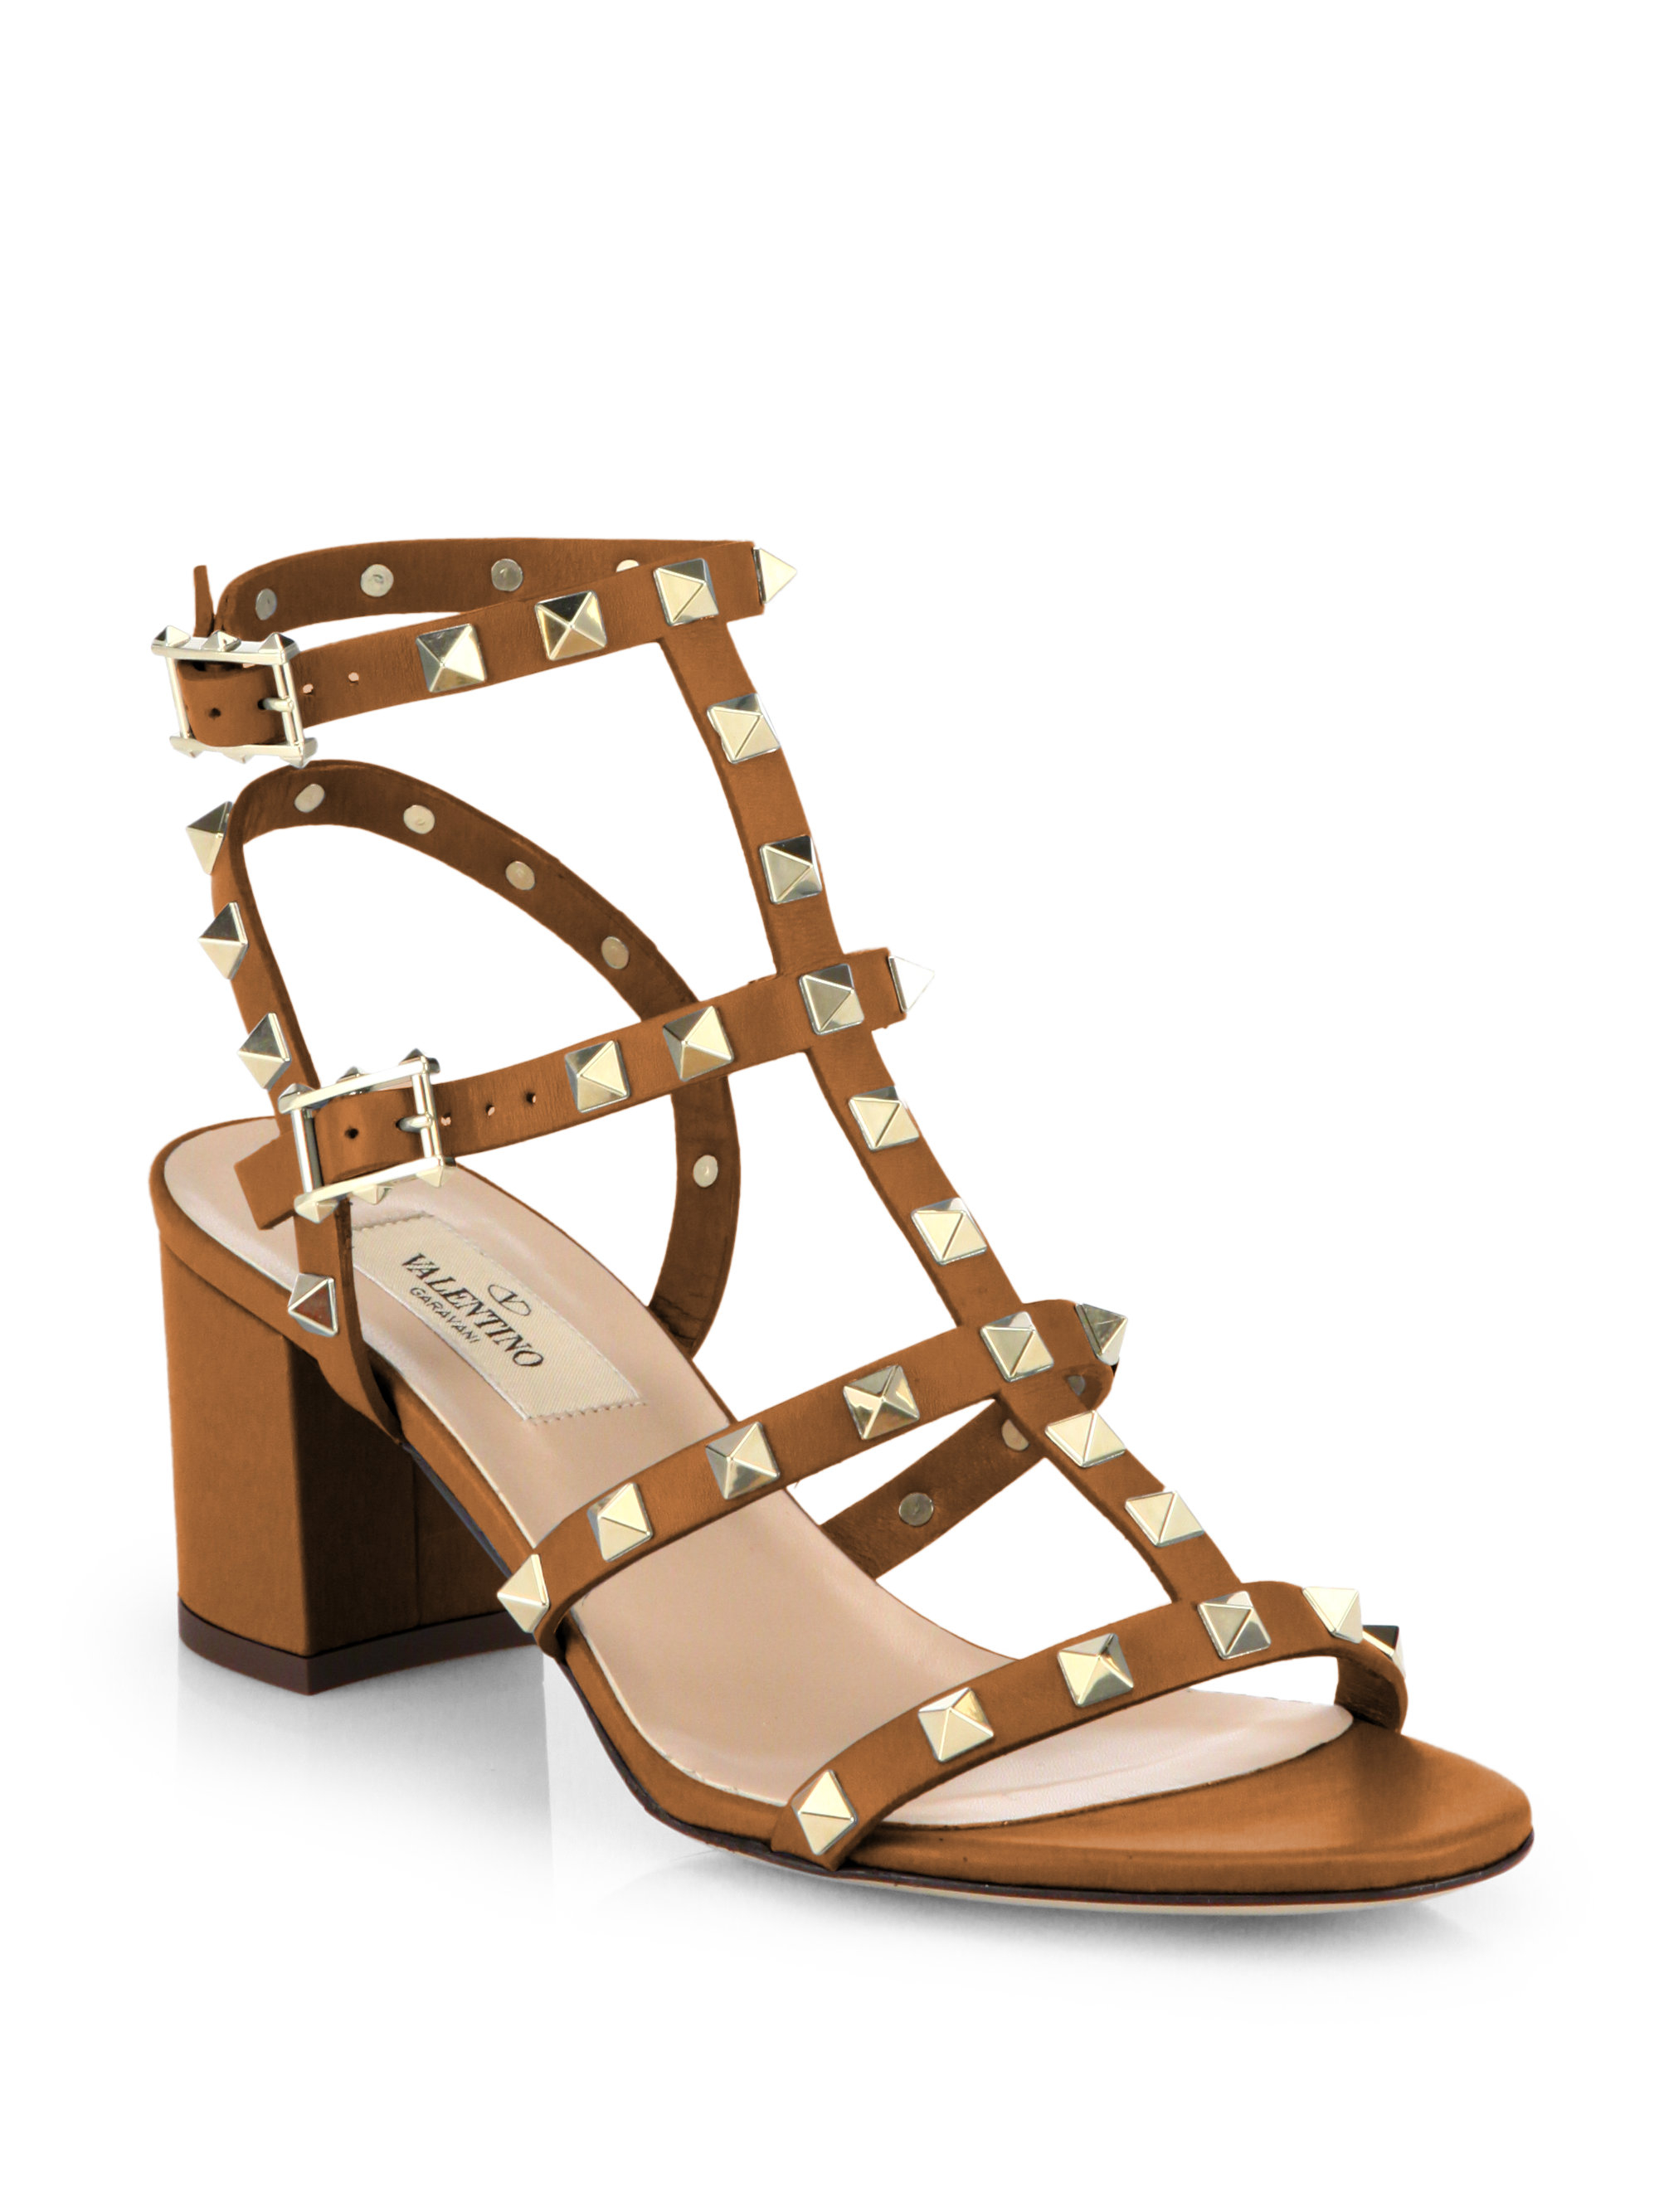 Valentino Rockstud Leather Sandals In Brown Lyst